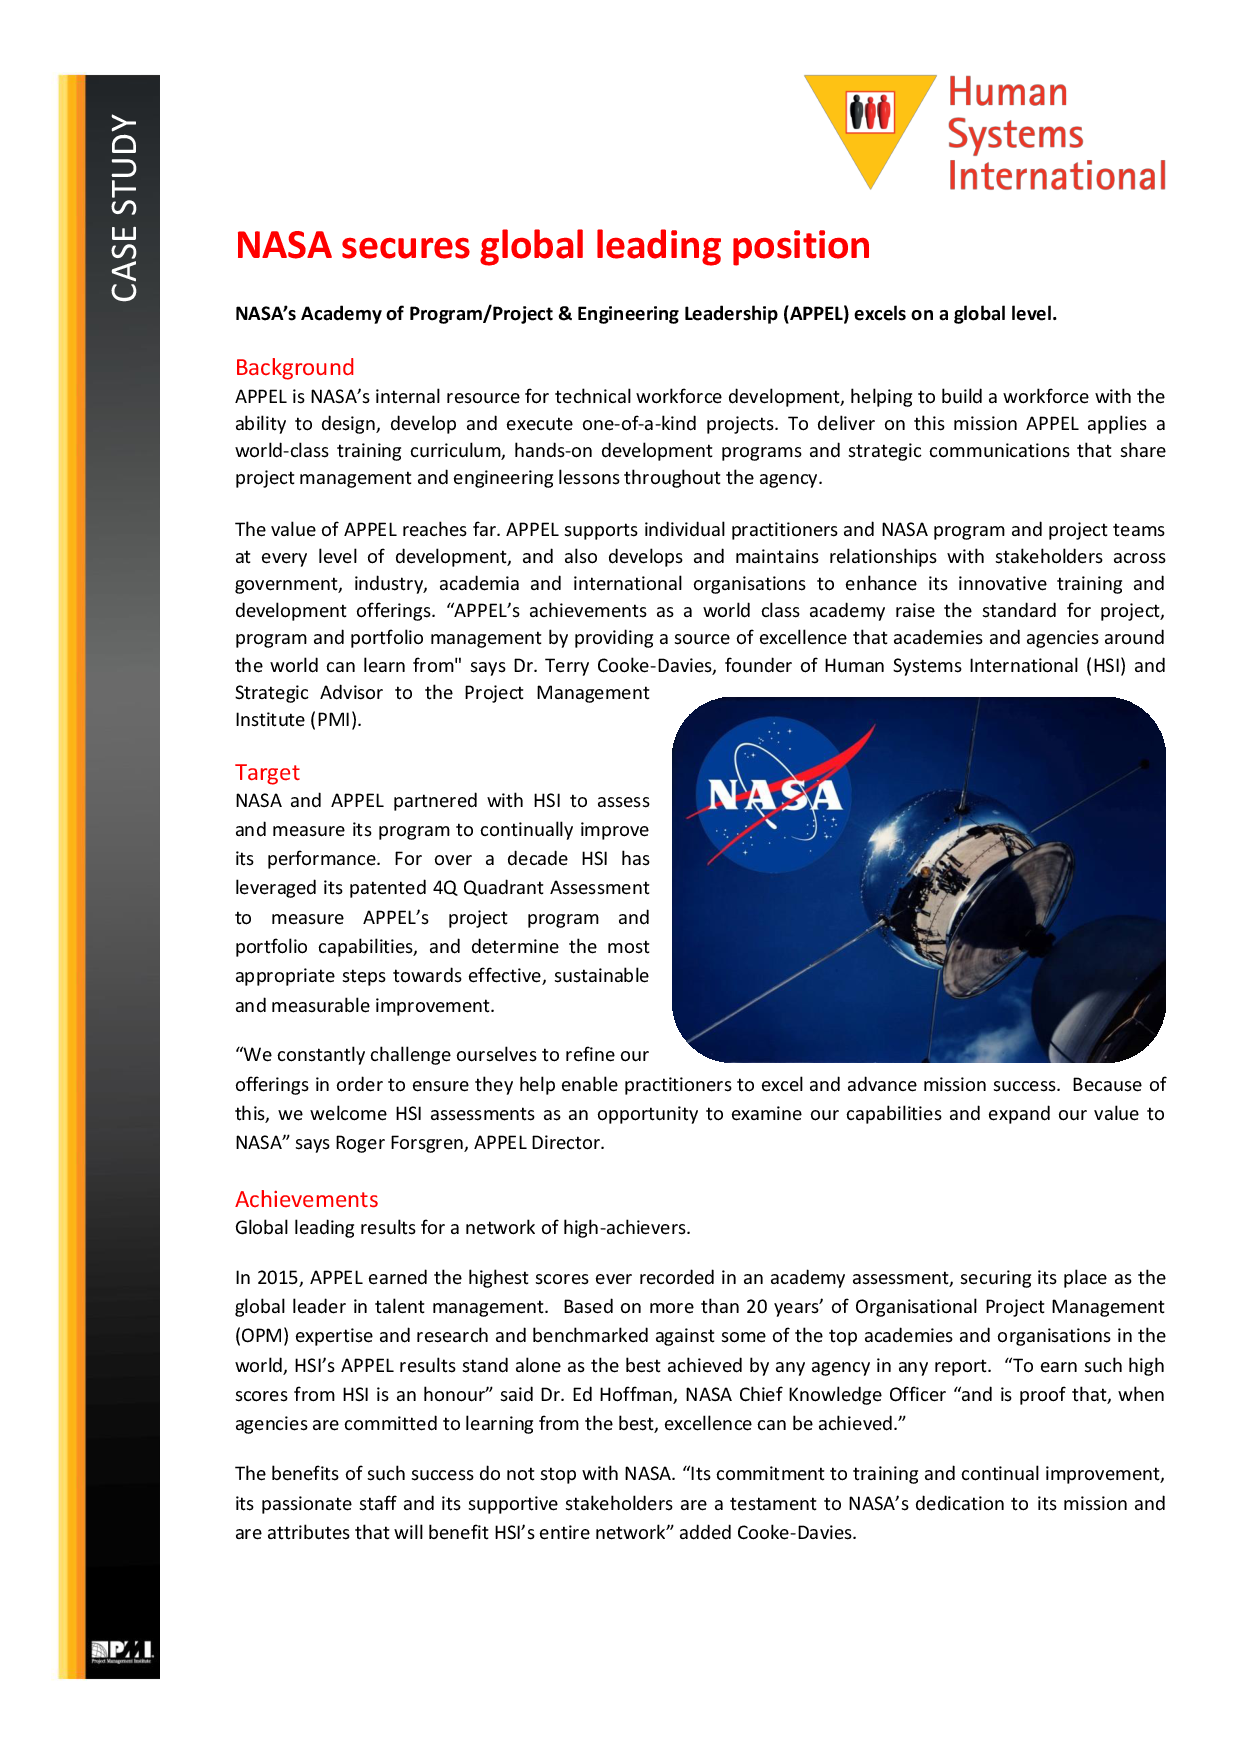 NASA Secures Global Leading Position